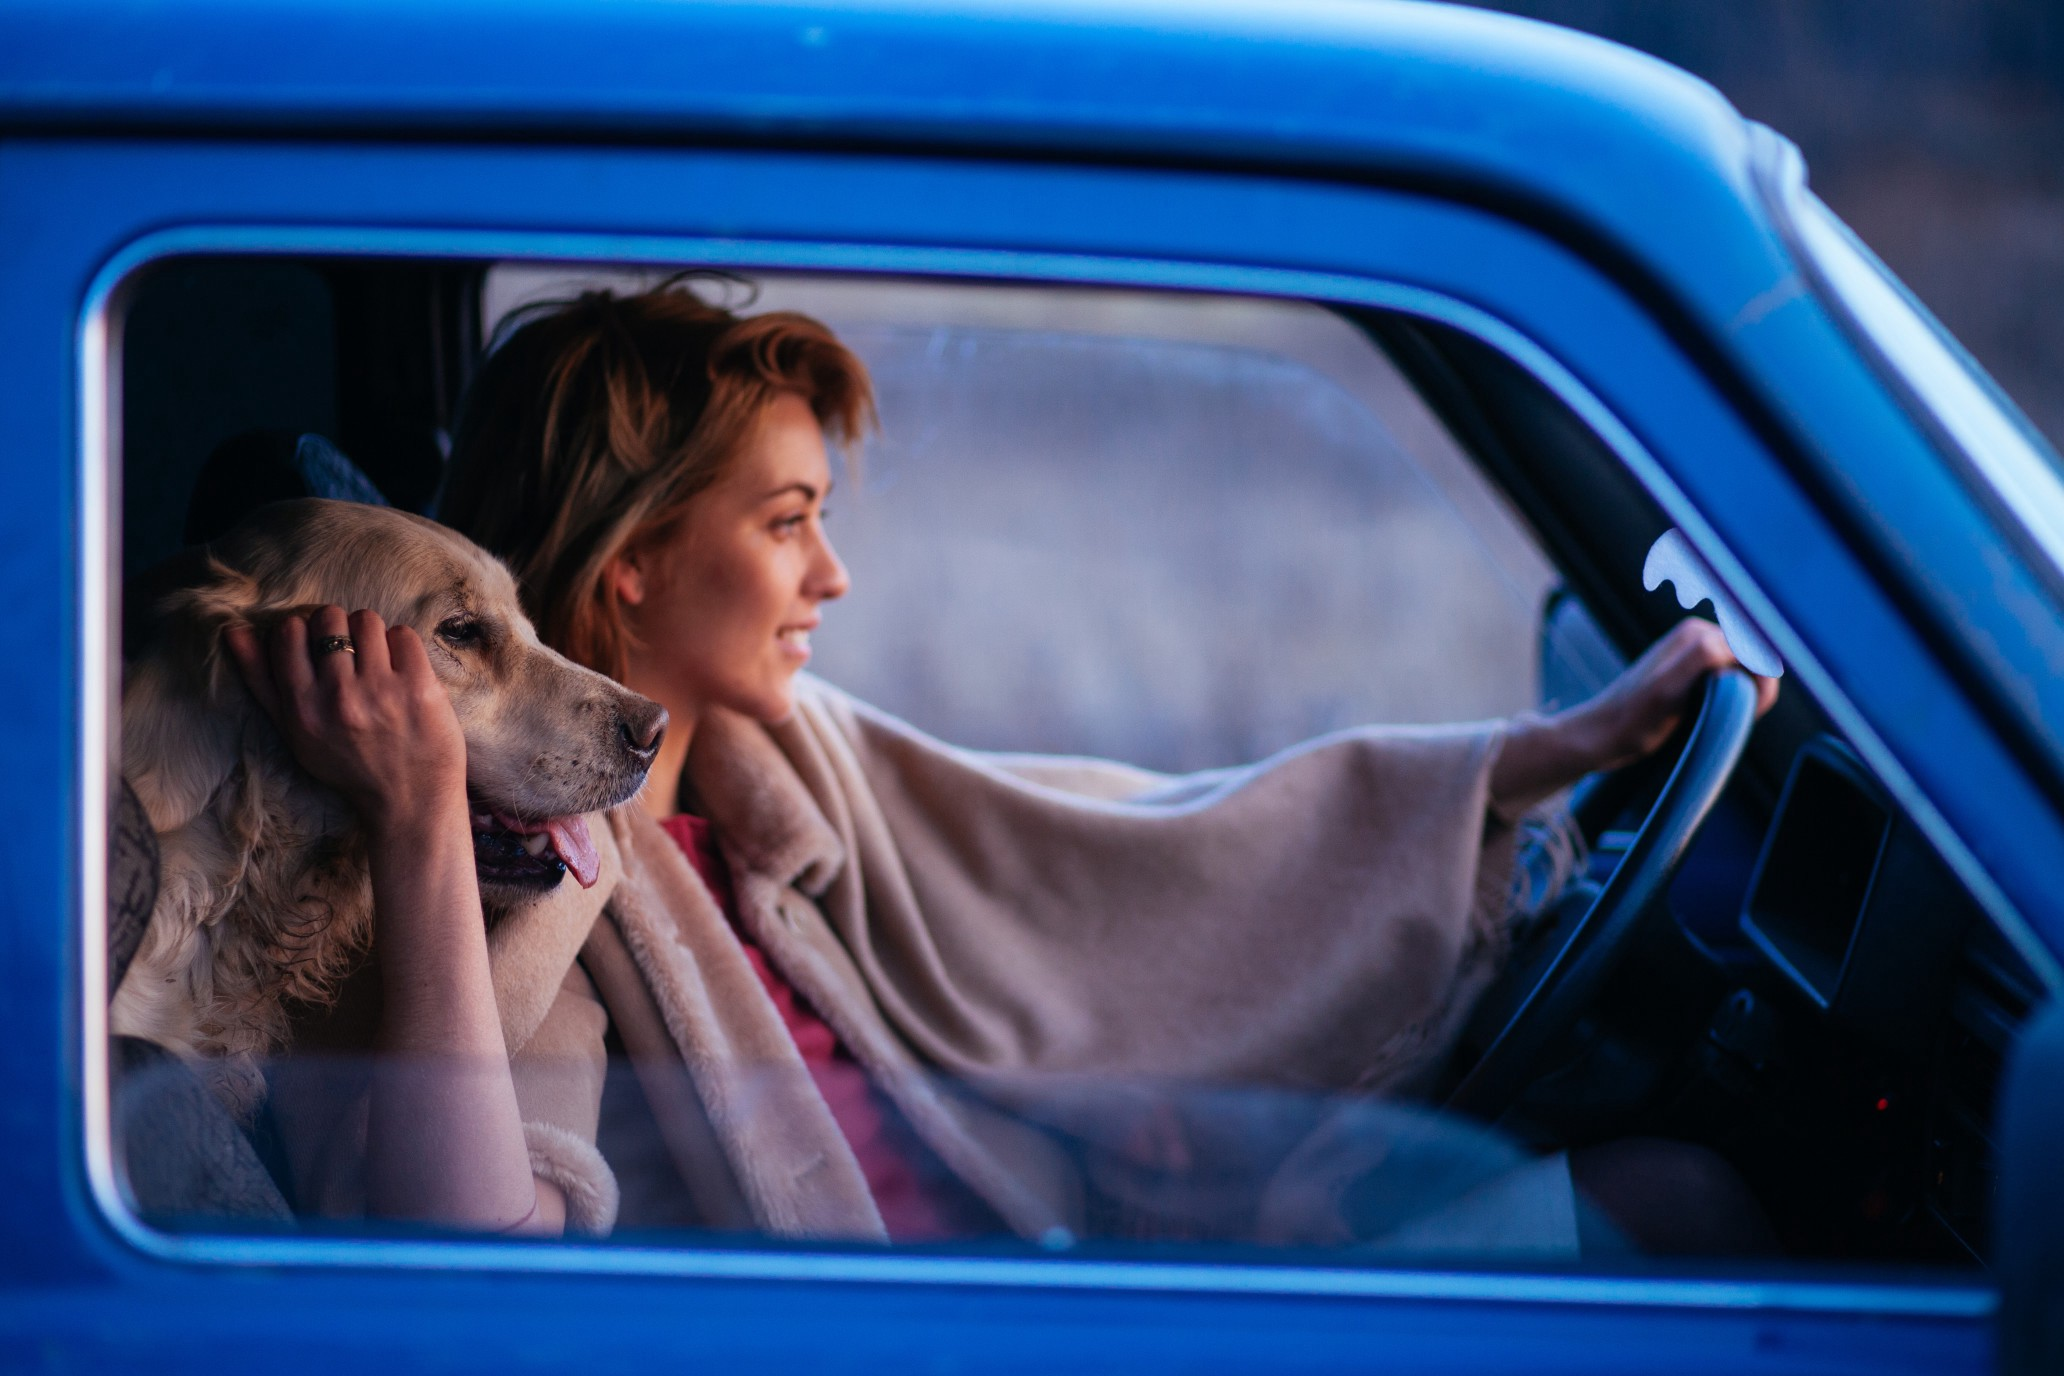 A woman in a blue truck smiles as she holds her steering wheel and pets her dog, whose head rests on her shoulder.